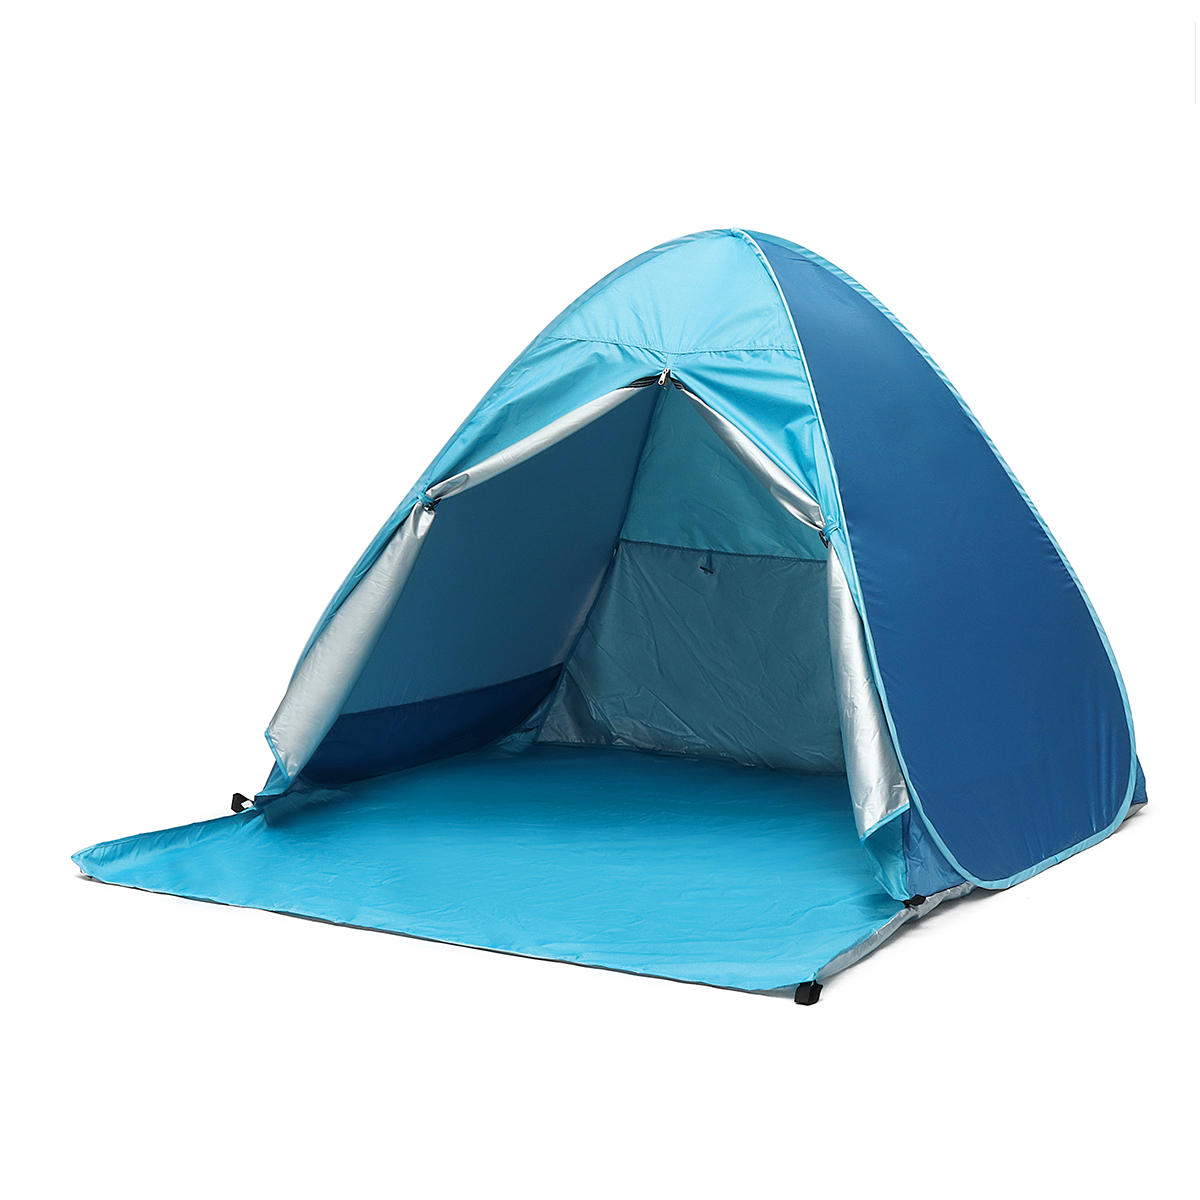 Outdoor 4 People C&ing Beach Pop Up Tent Automatic Waterproof Anti-UV Sunshade Canopy COD  sc 1 st  Banggood & outdoor 4 people camping beach pop up tent automatic waterproof anti ...